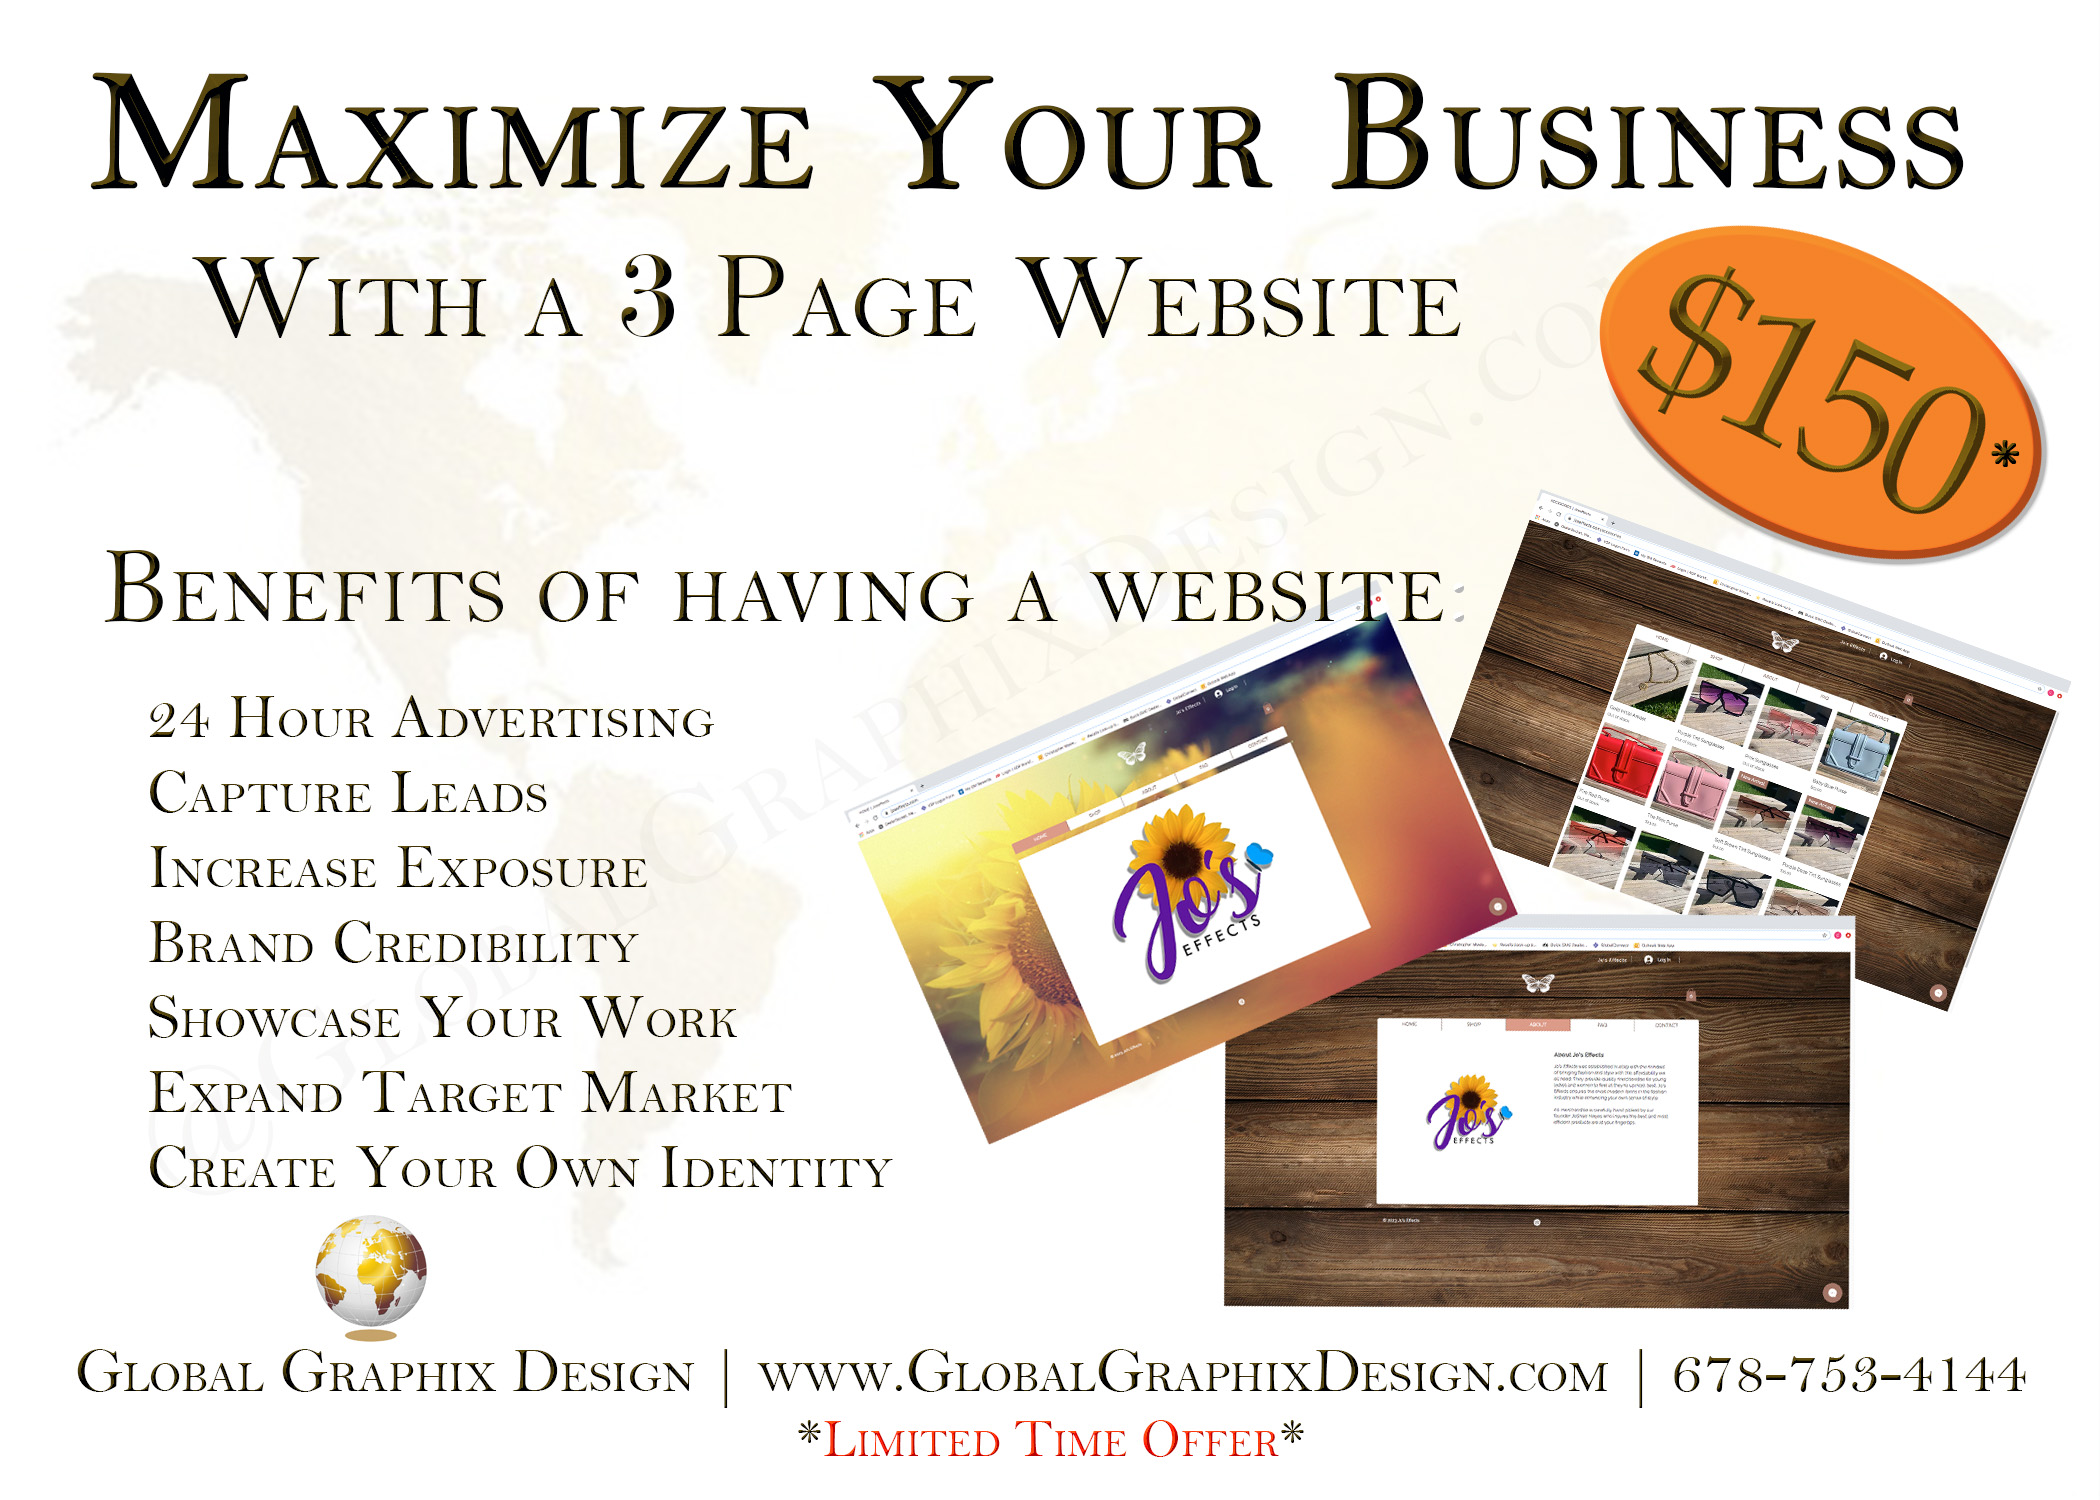 Maximize Your Business